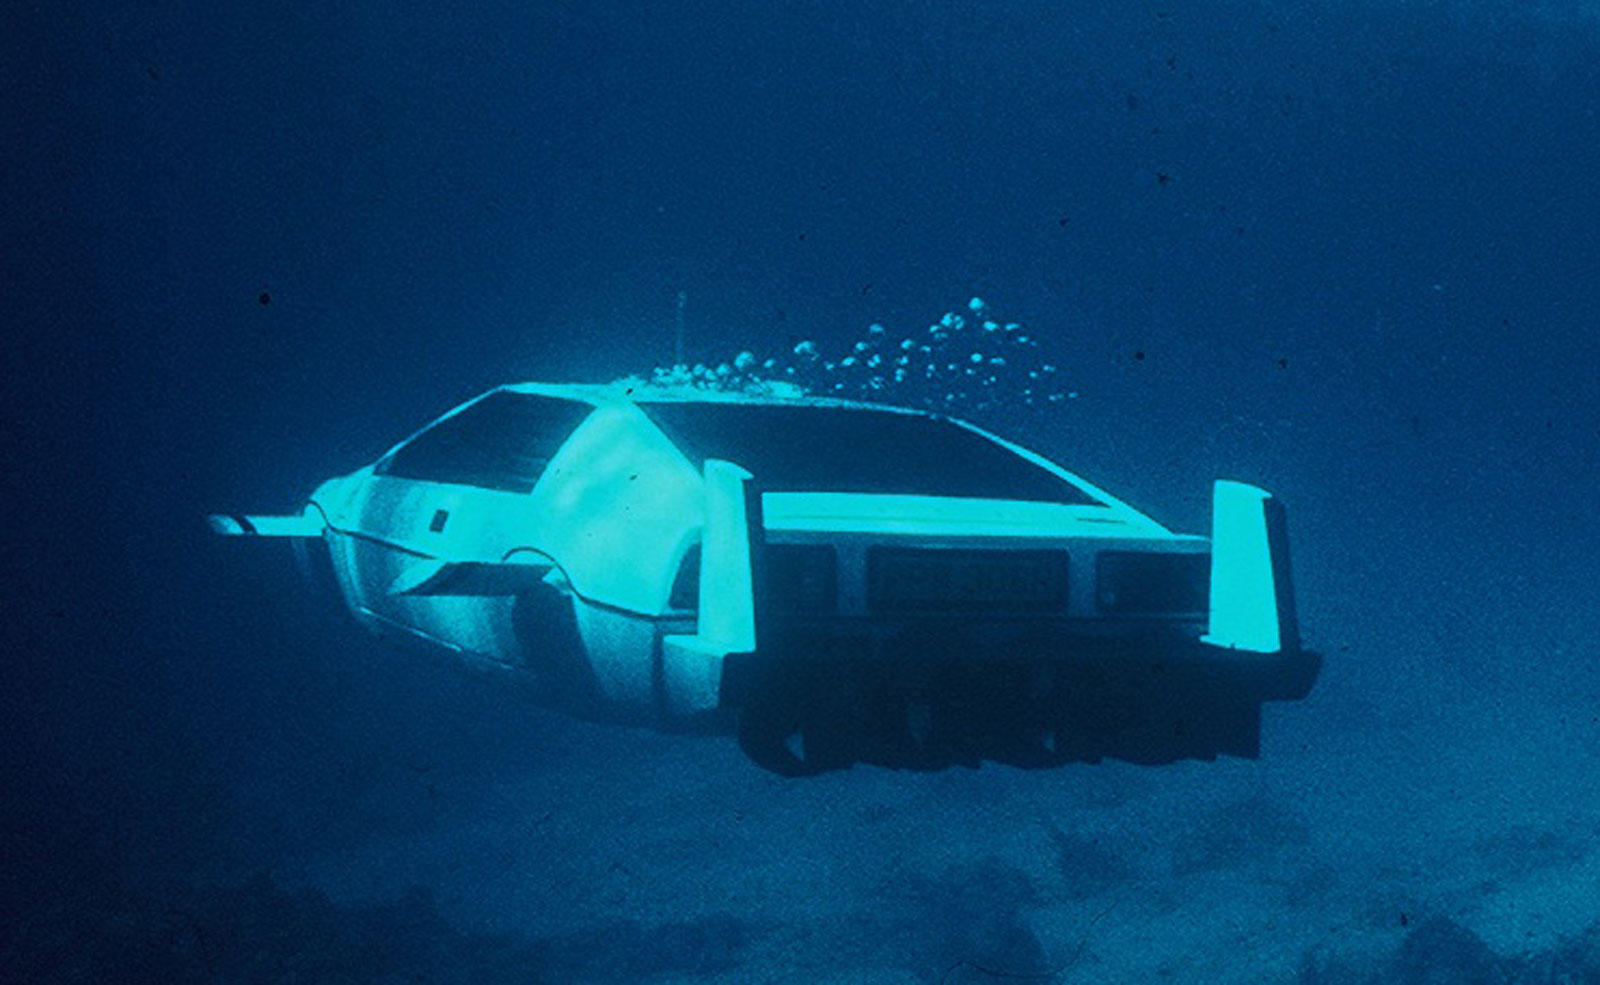 submersible-lotus-esprit-from-james-bond-flick-the-spy-who-loved-me_100431919_h